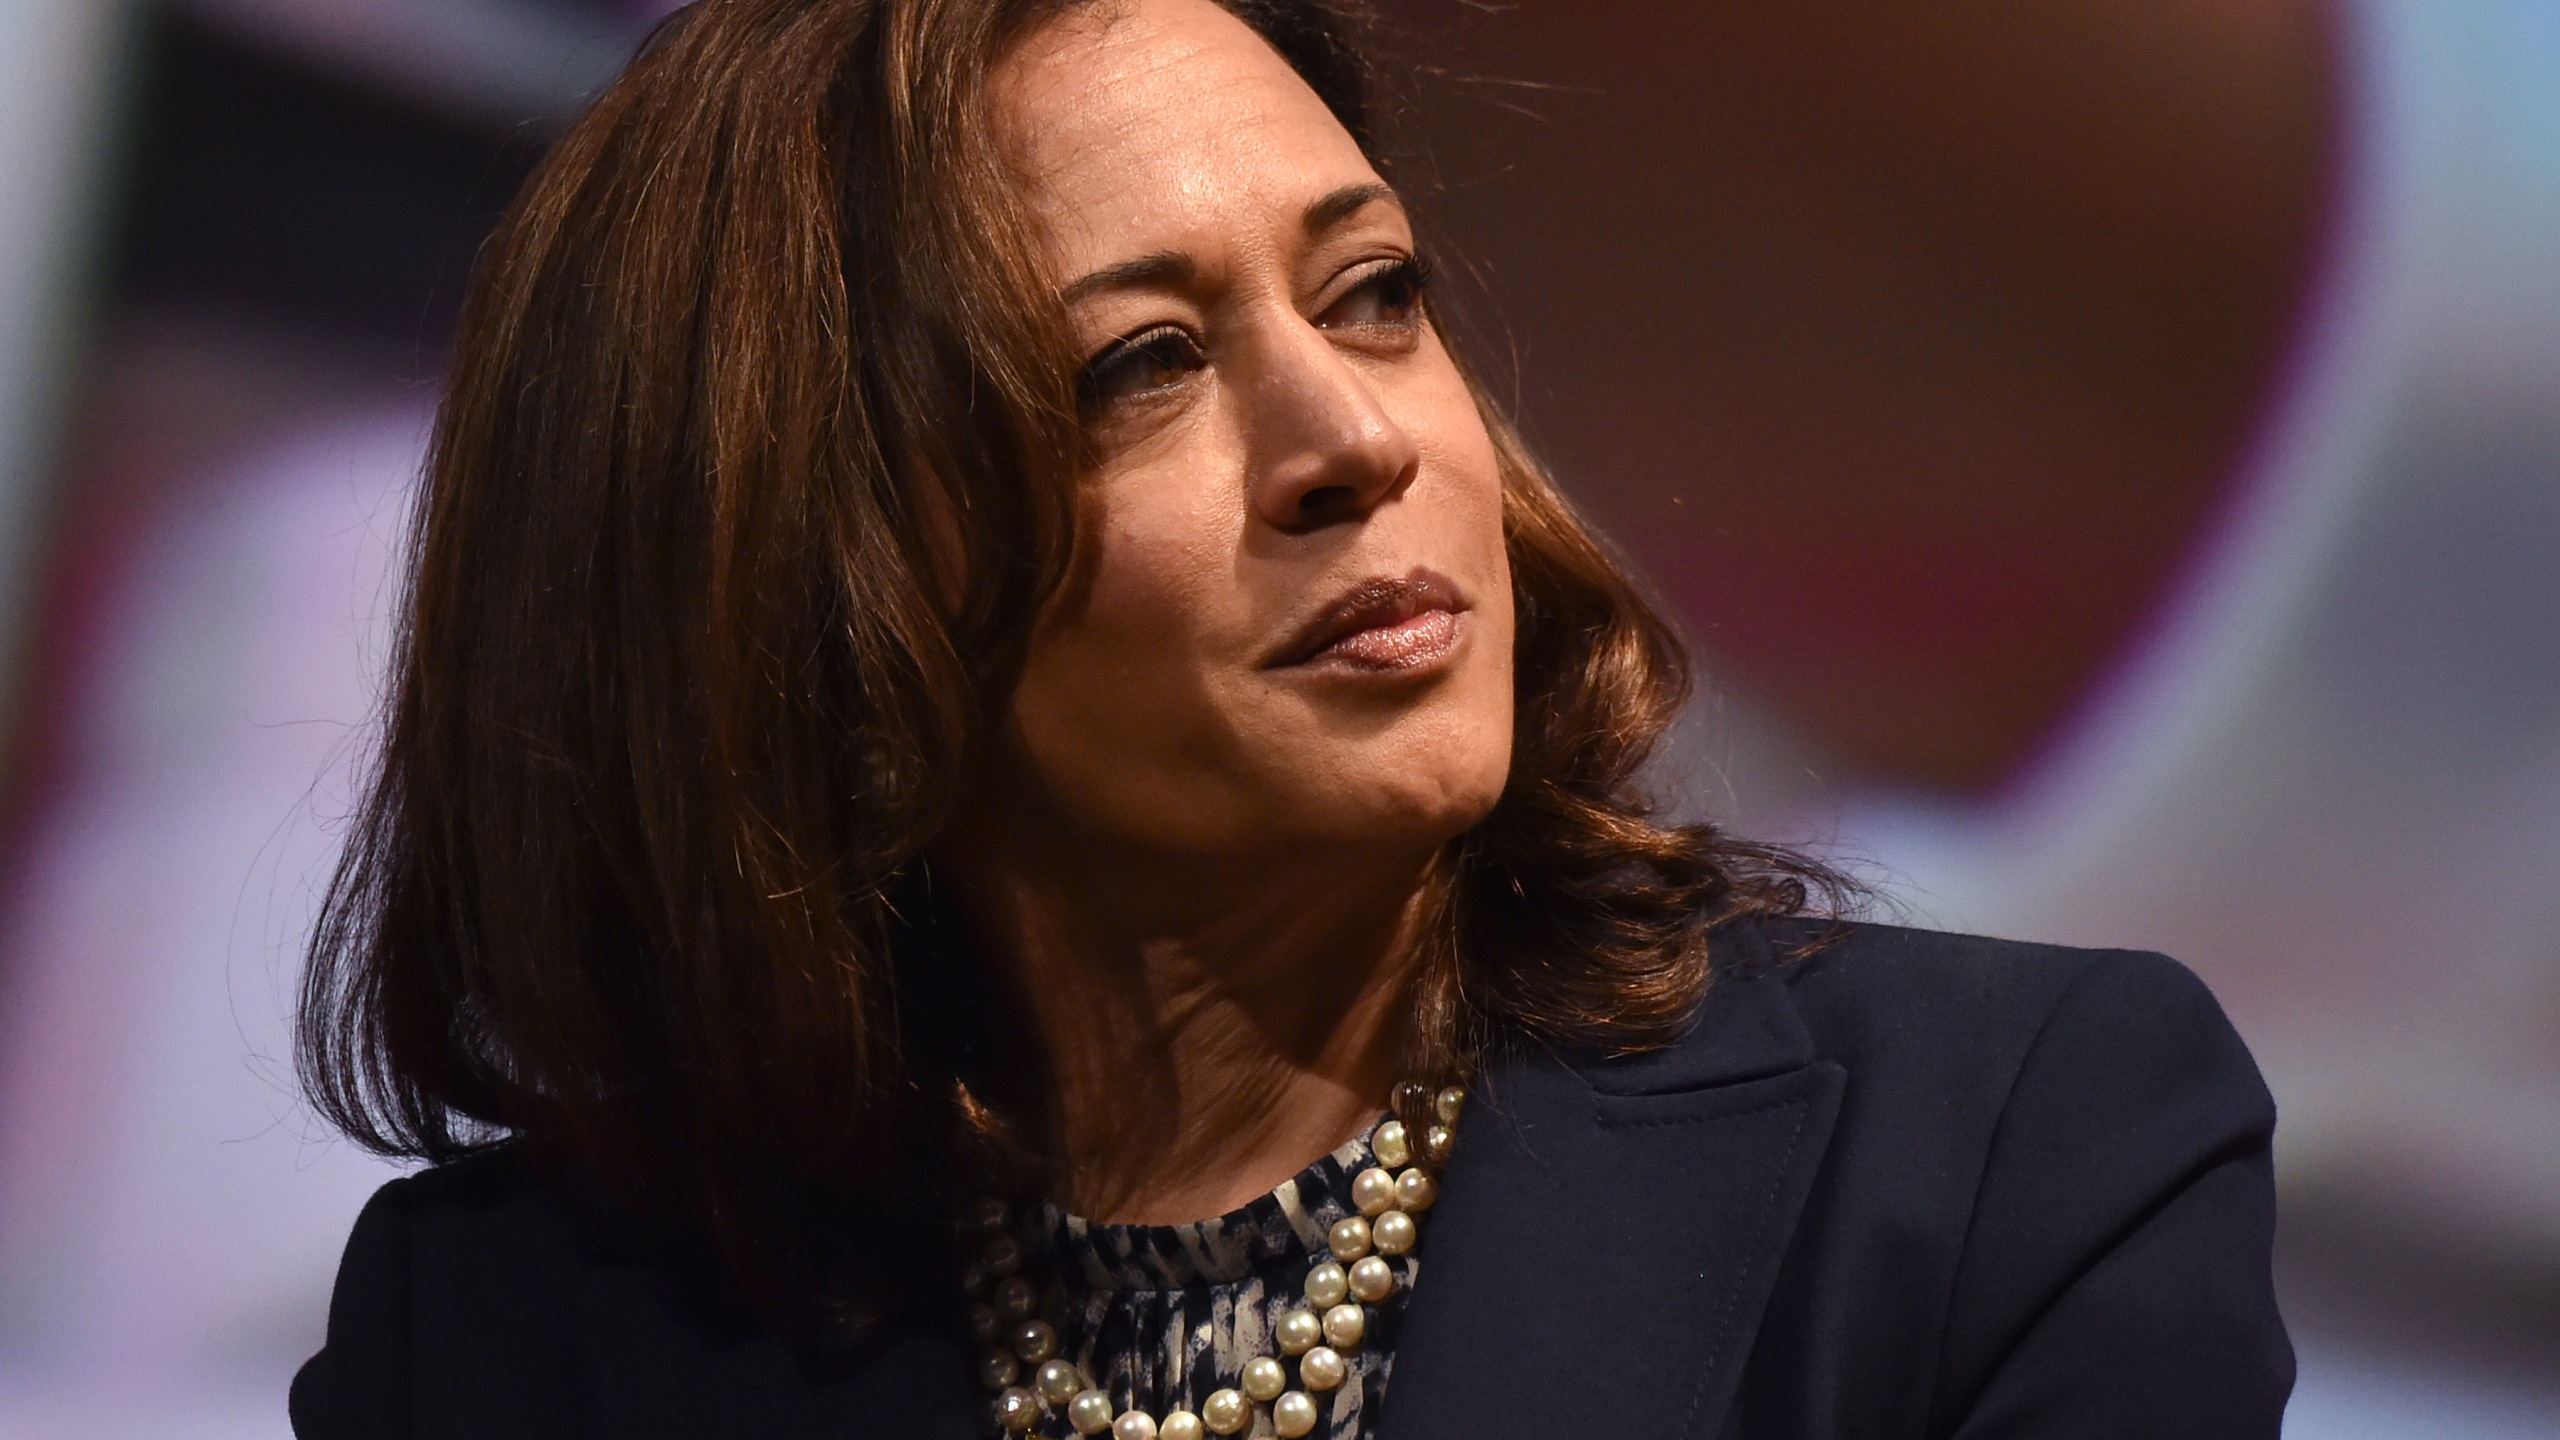 Senator Kamala Harris attends the United State of Women Summit at the Shrine Auditorium in Los Angeles, on May 5, 2018. (Chris Delmas/AFP/Getty Images)